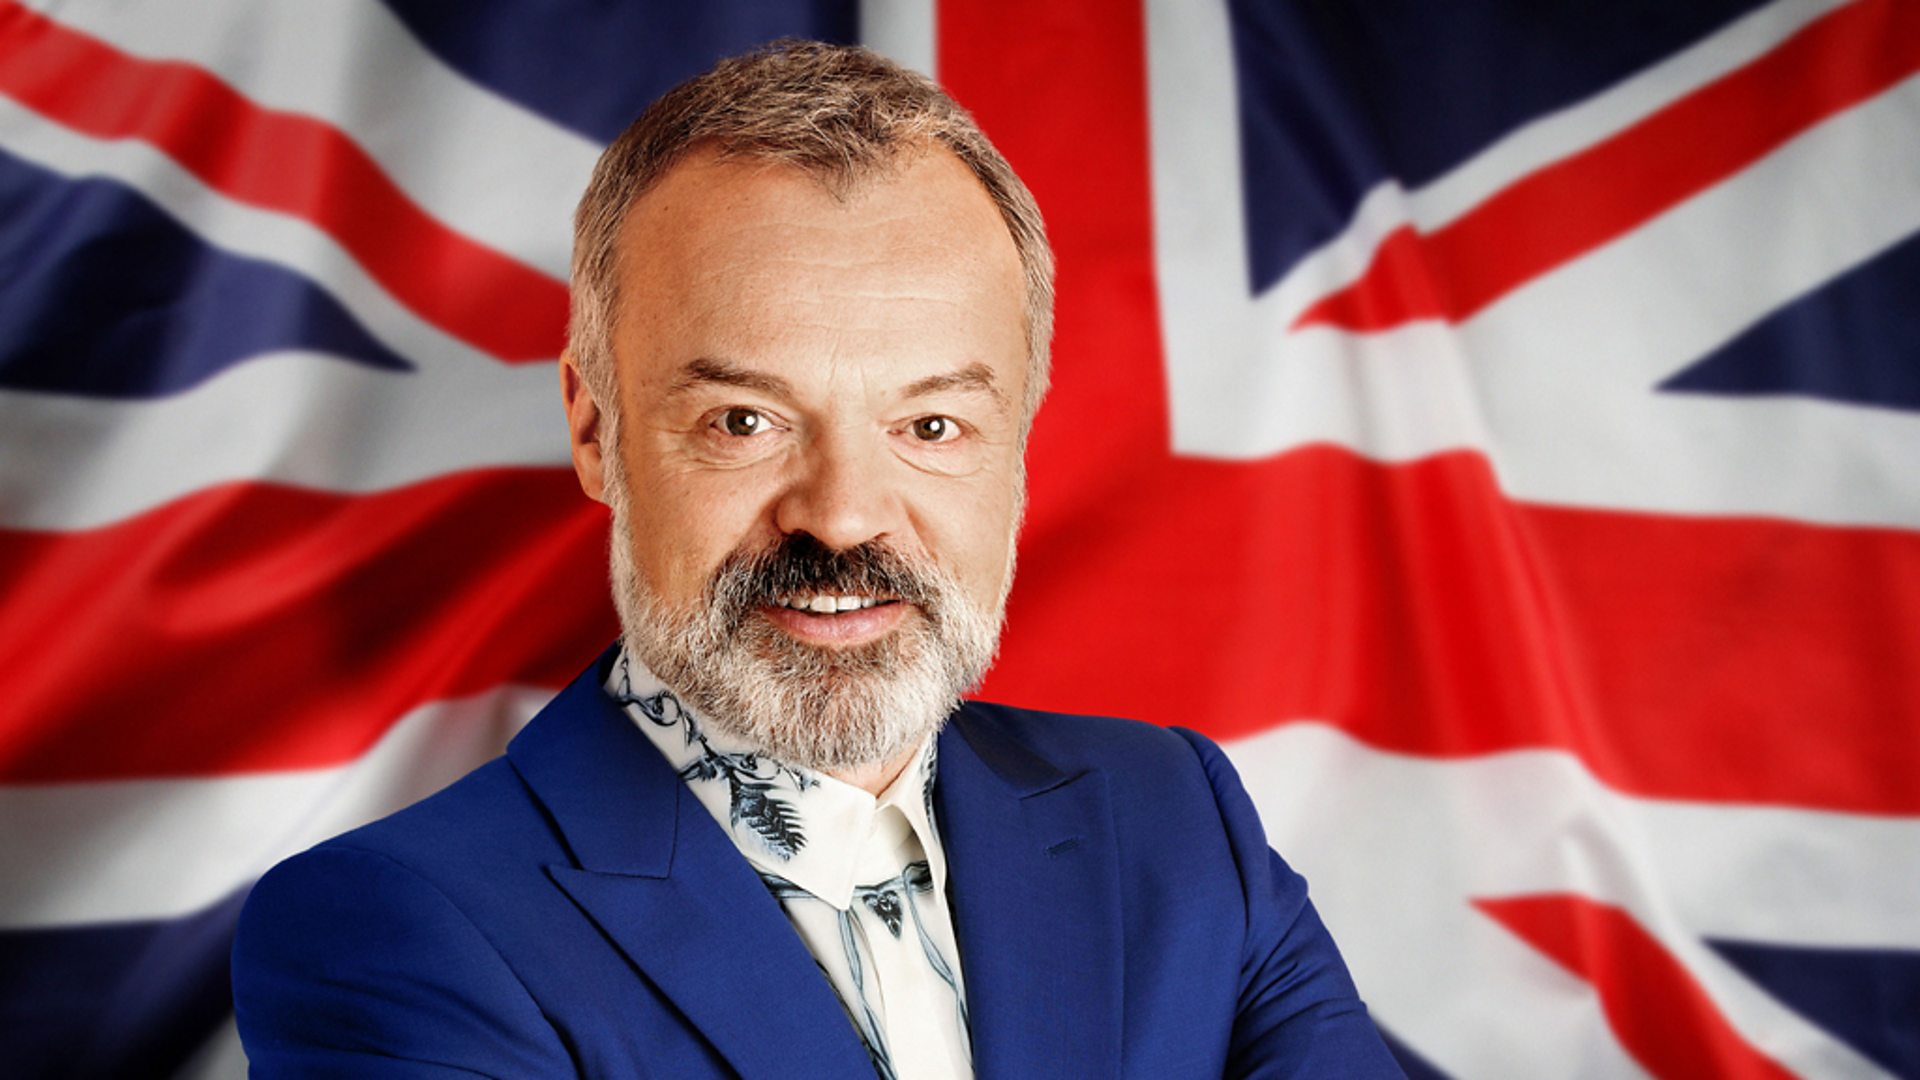 The Eurovision Song Contest 2021 across the BBC